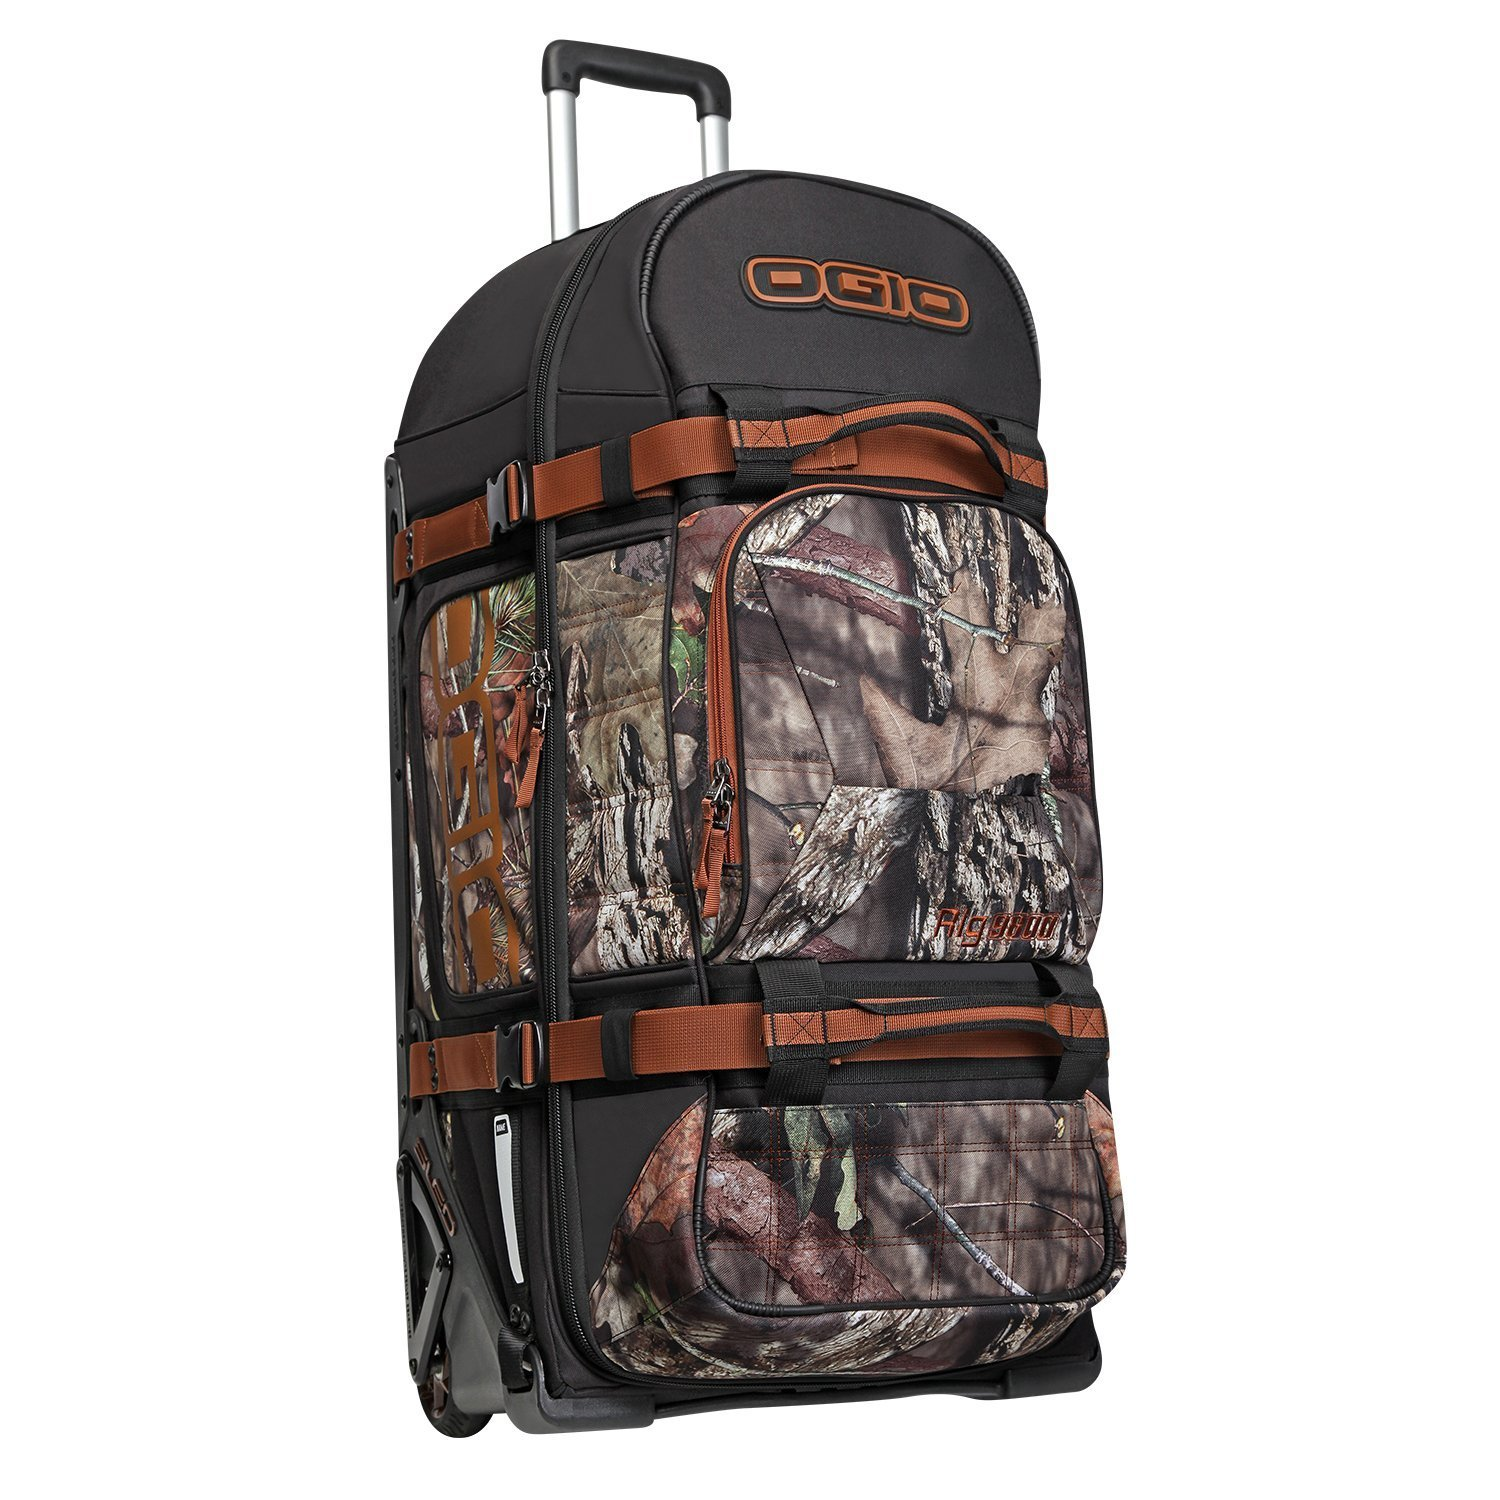 OGIO Rig 9800 Rolling Luggage Bag, Mossy Oak Break-Up Country